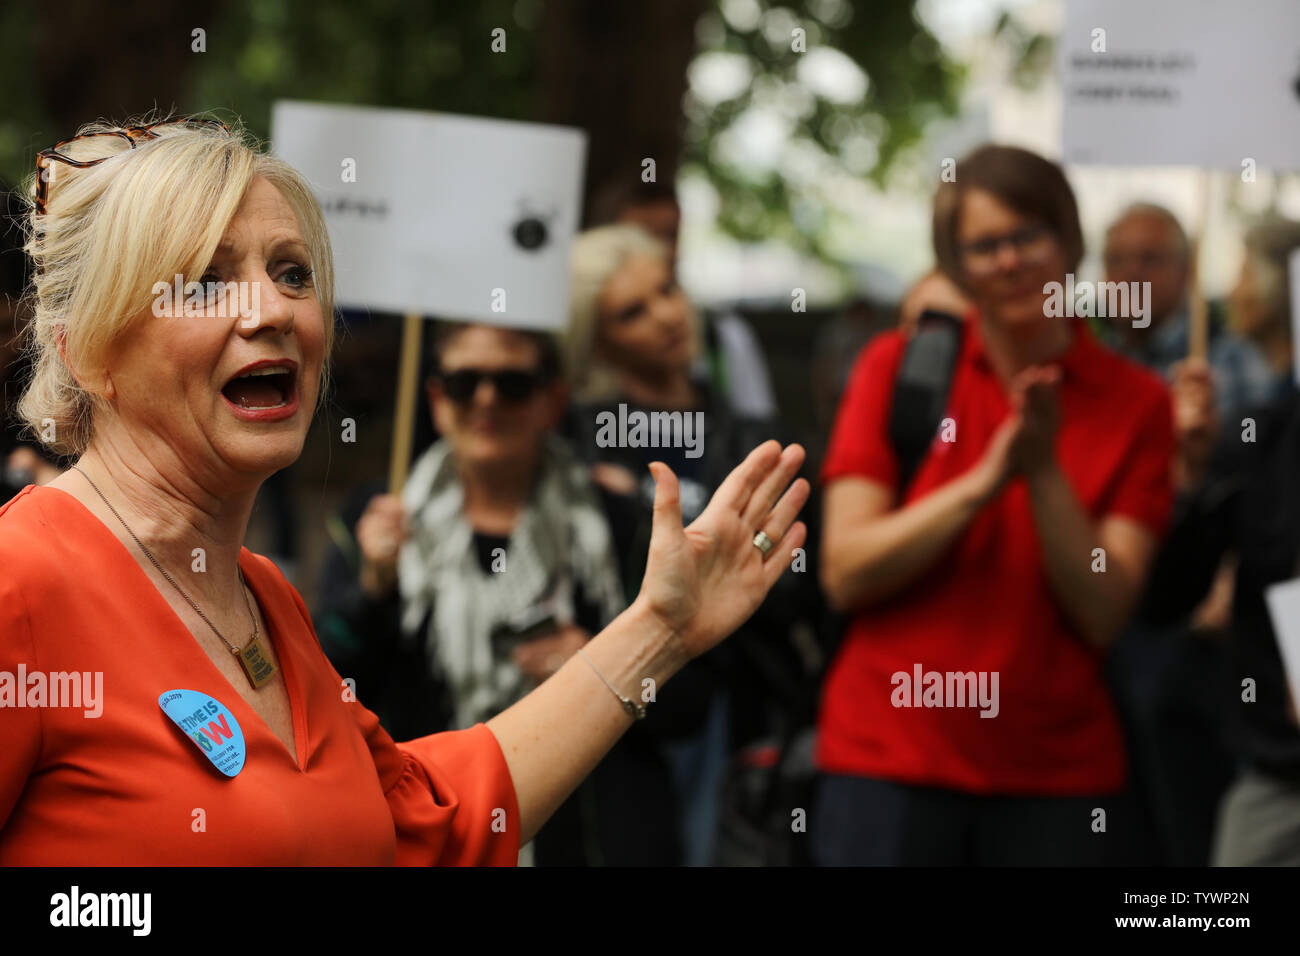 London, UK. 26th June 2019. British Member of Parliament, Tracy Brabin, talking with participants of the mass lobby of MP's around the Houses of Parliament in London, organised by The Climate Coalition and Greener UK, pressing for more urgent and bold action on climate change. Credit: Joe Kuis / Alamy News - Stock Image